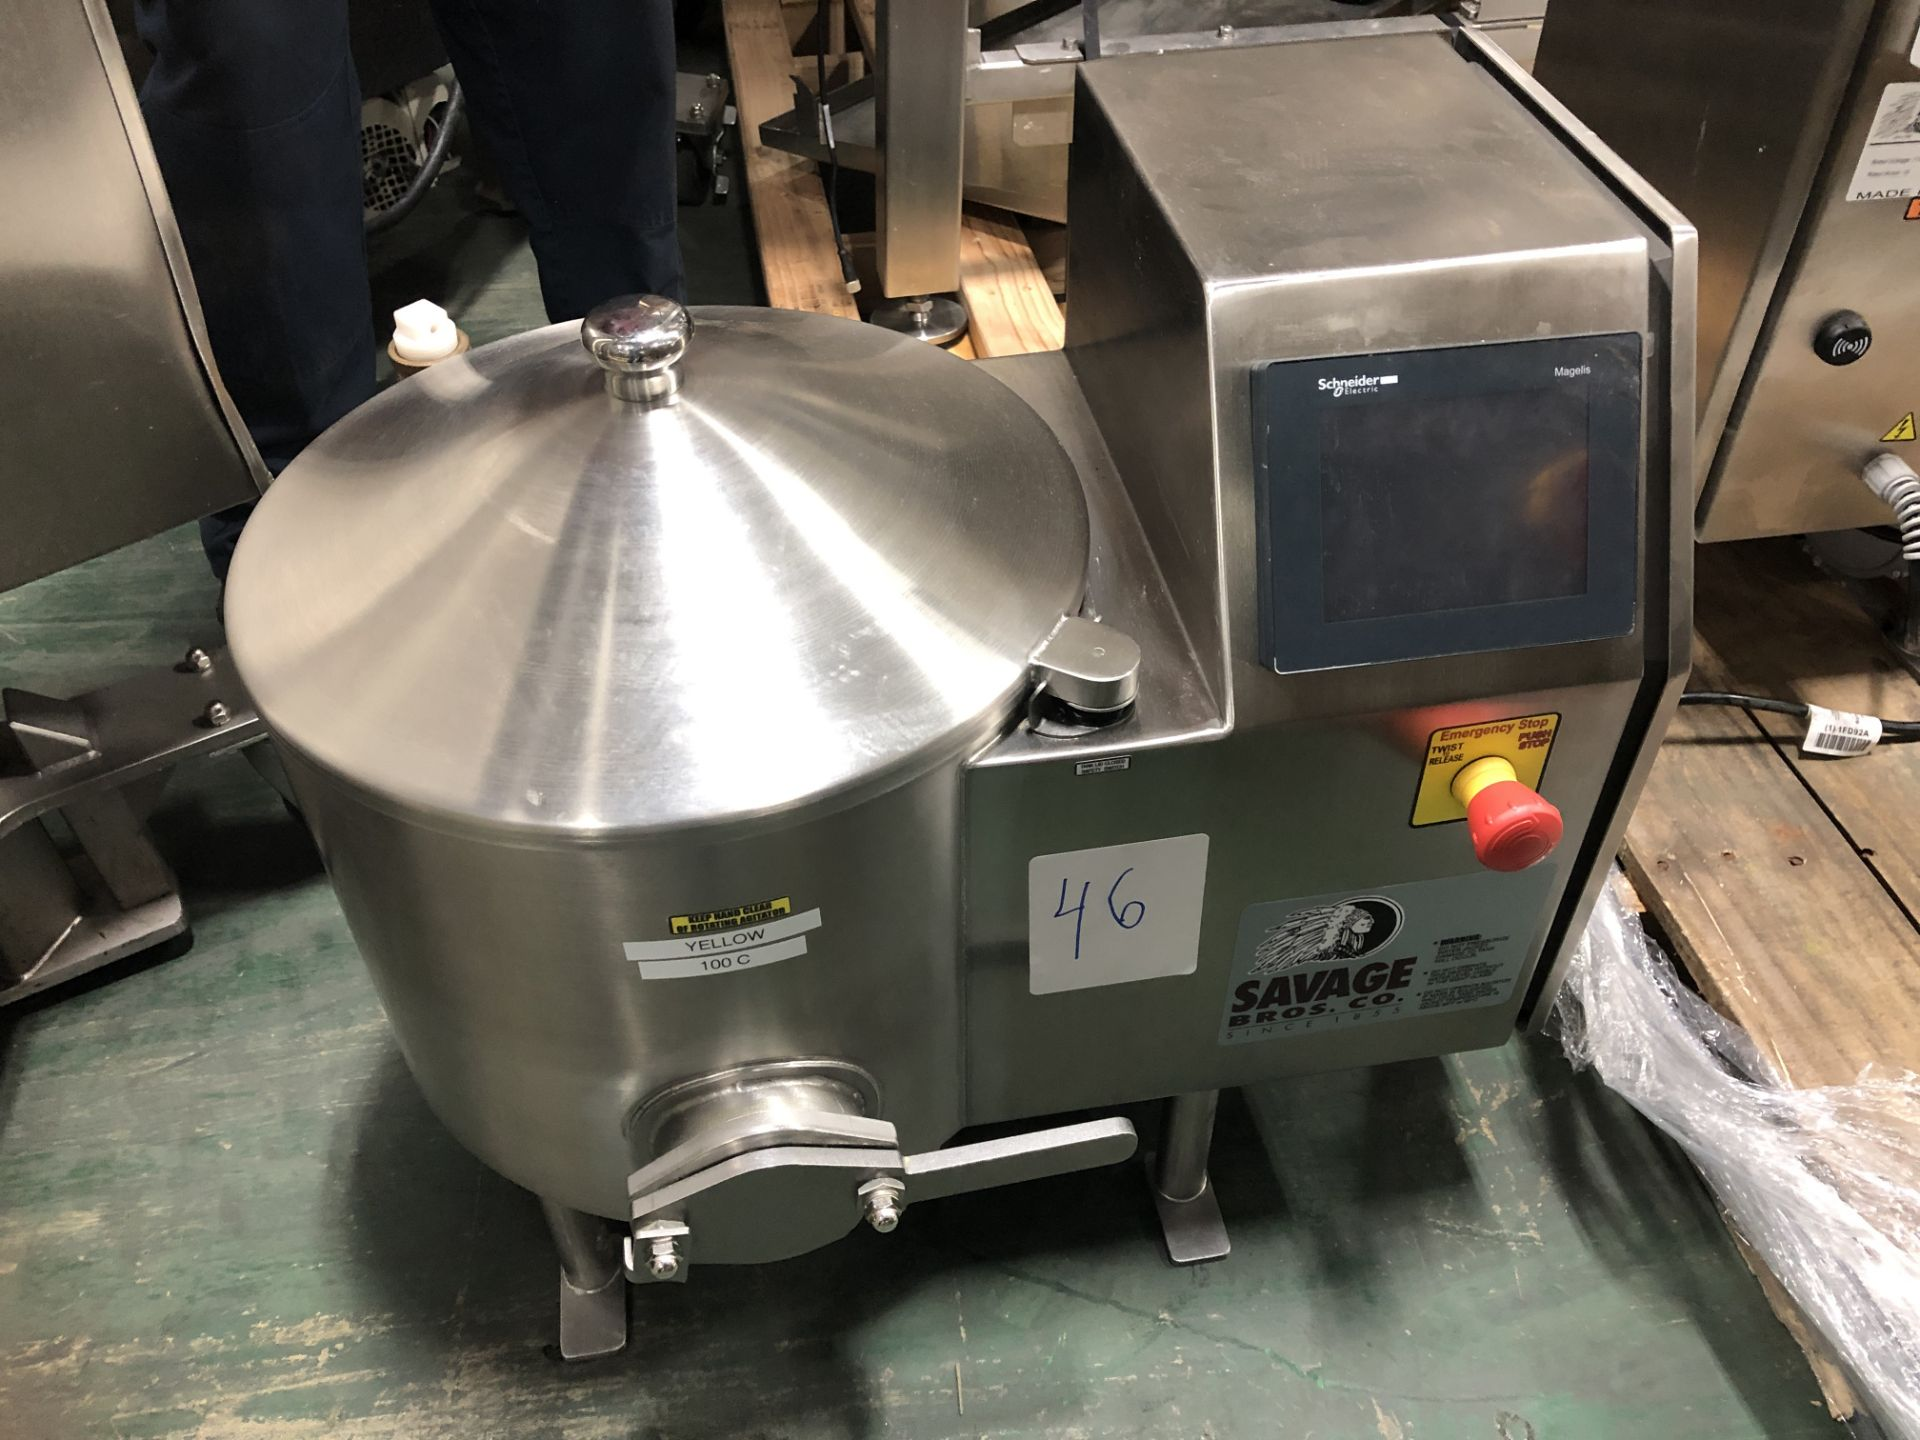 Lot 34 - Savage 50-lb Stainless Steel Chocolate Melter, model 0934-40, jacketed and agitated, electrically